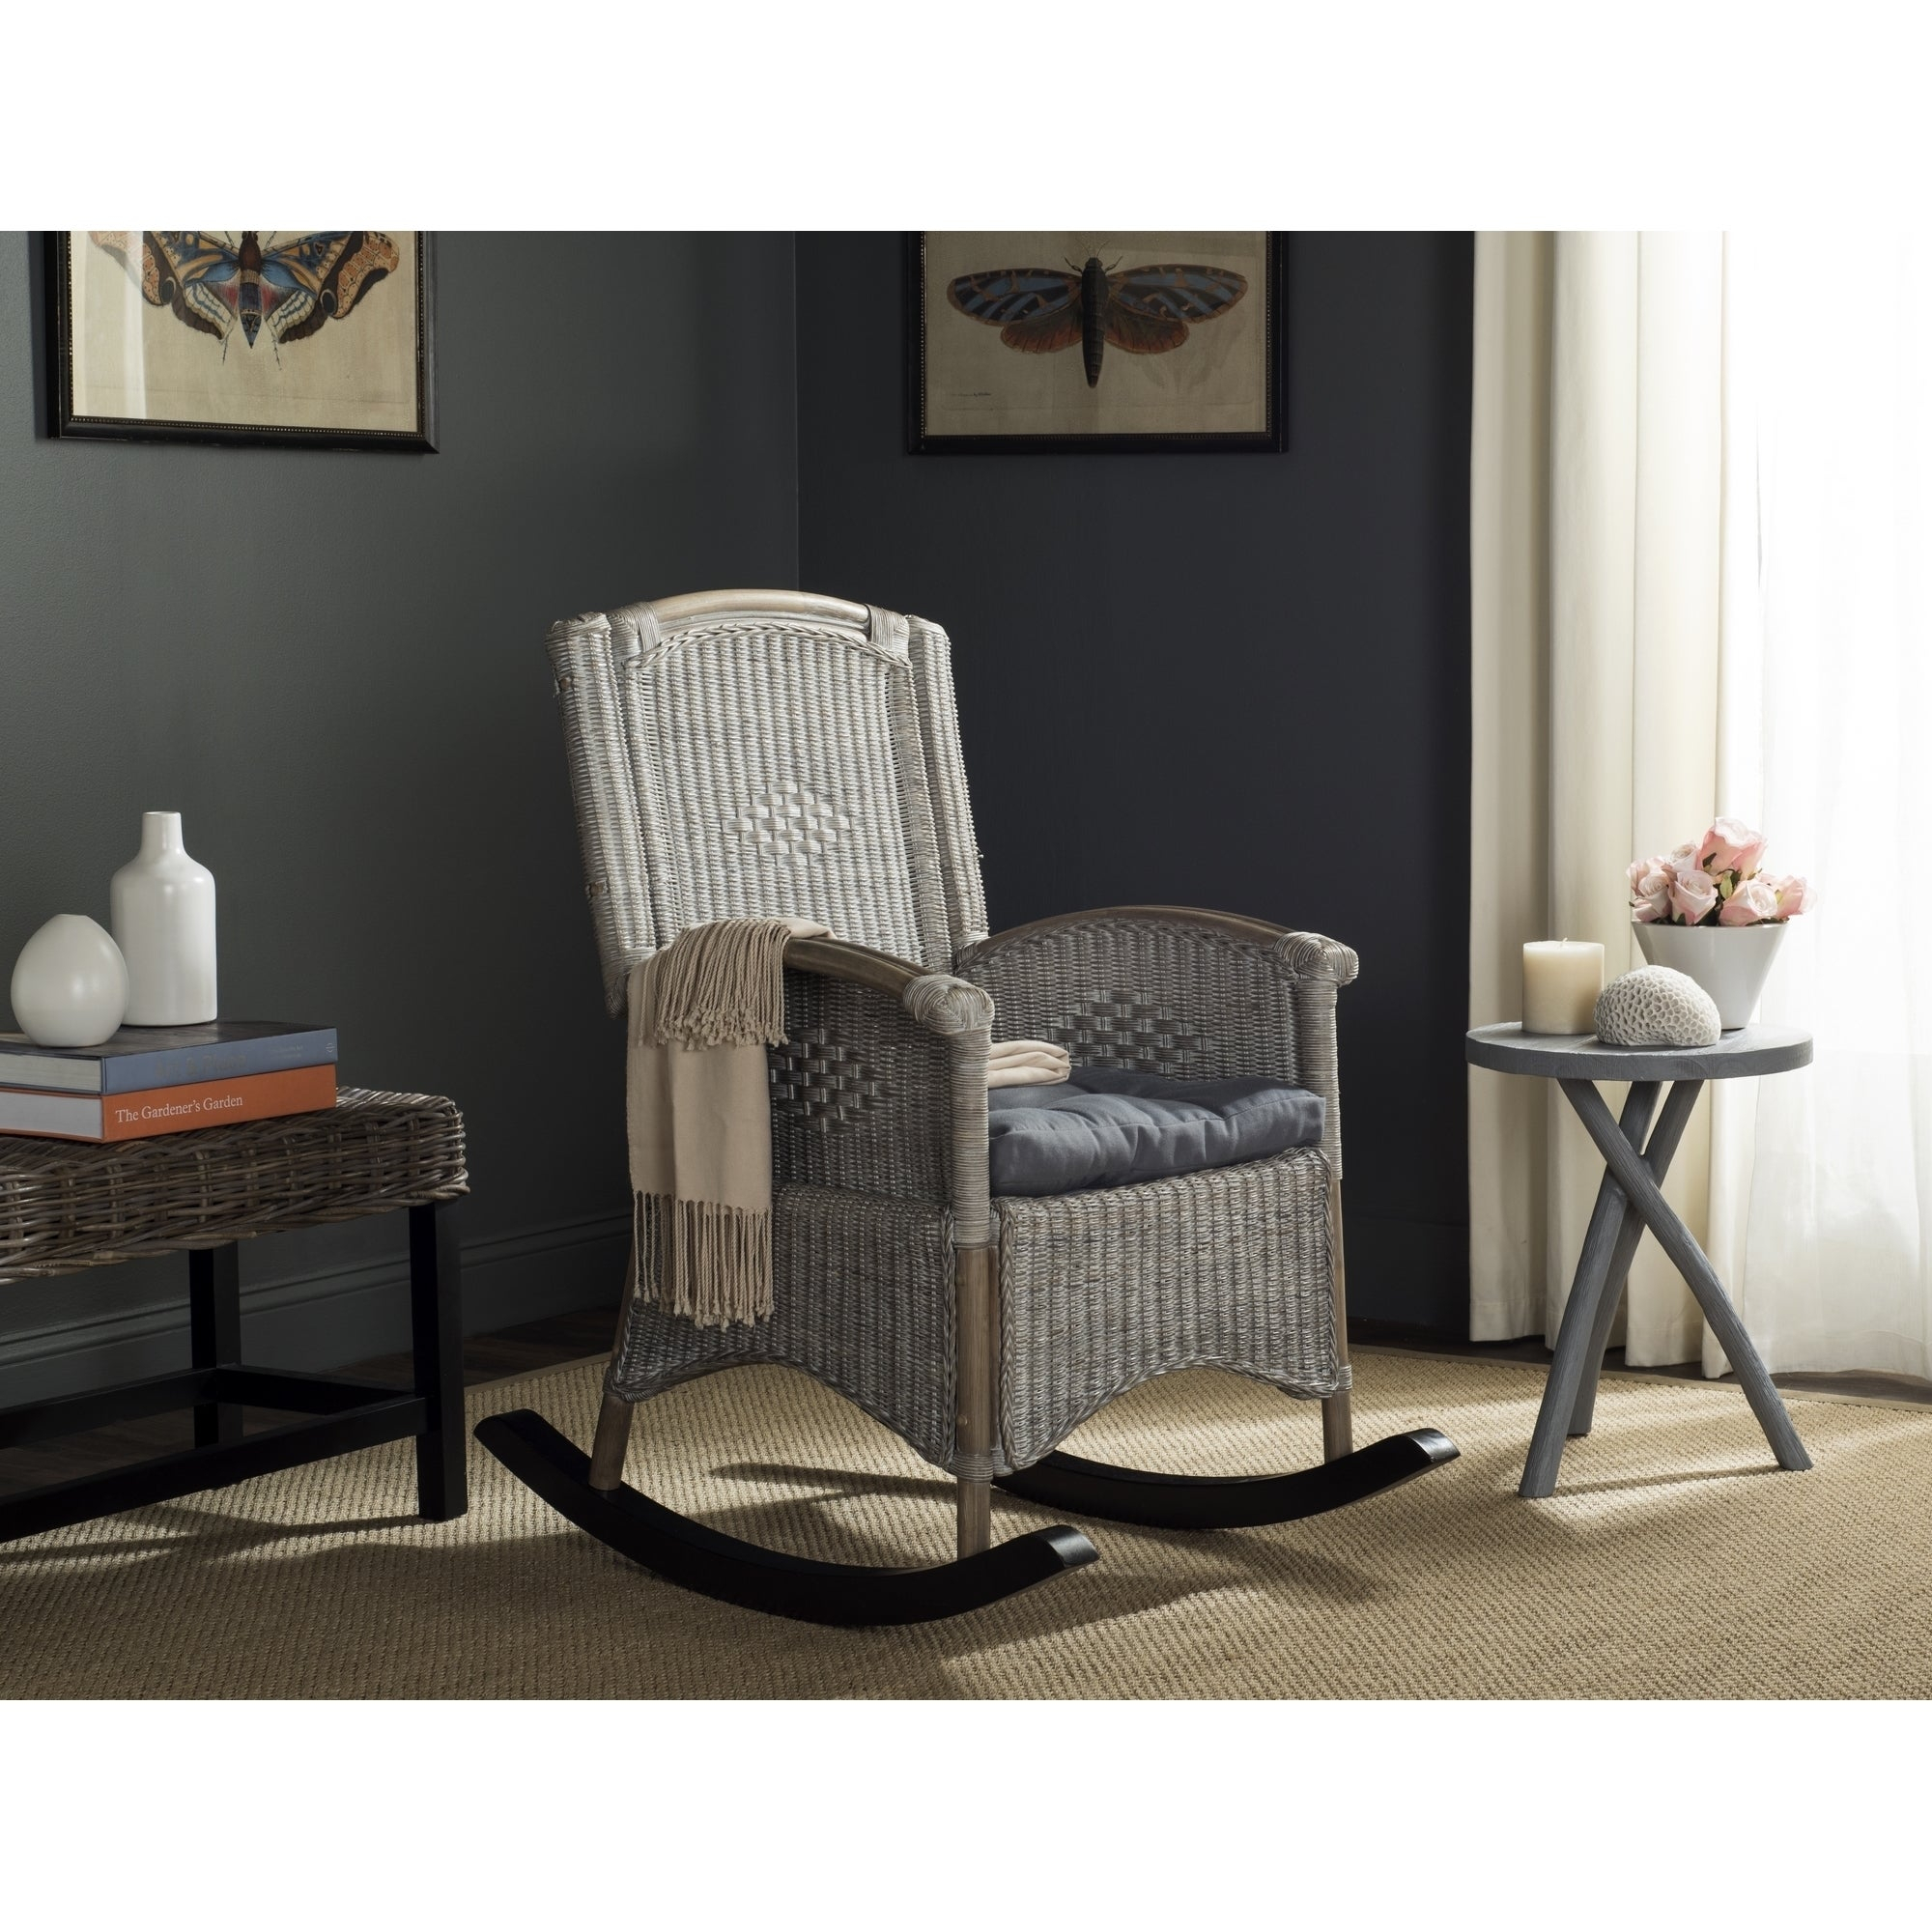 Safavieh Verona Antique Grey Rocking Chair Pertaining To Carbon Loft Ariel Rocking Chairs In Espresso Pu And Walnut (View 6 of 20)